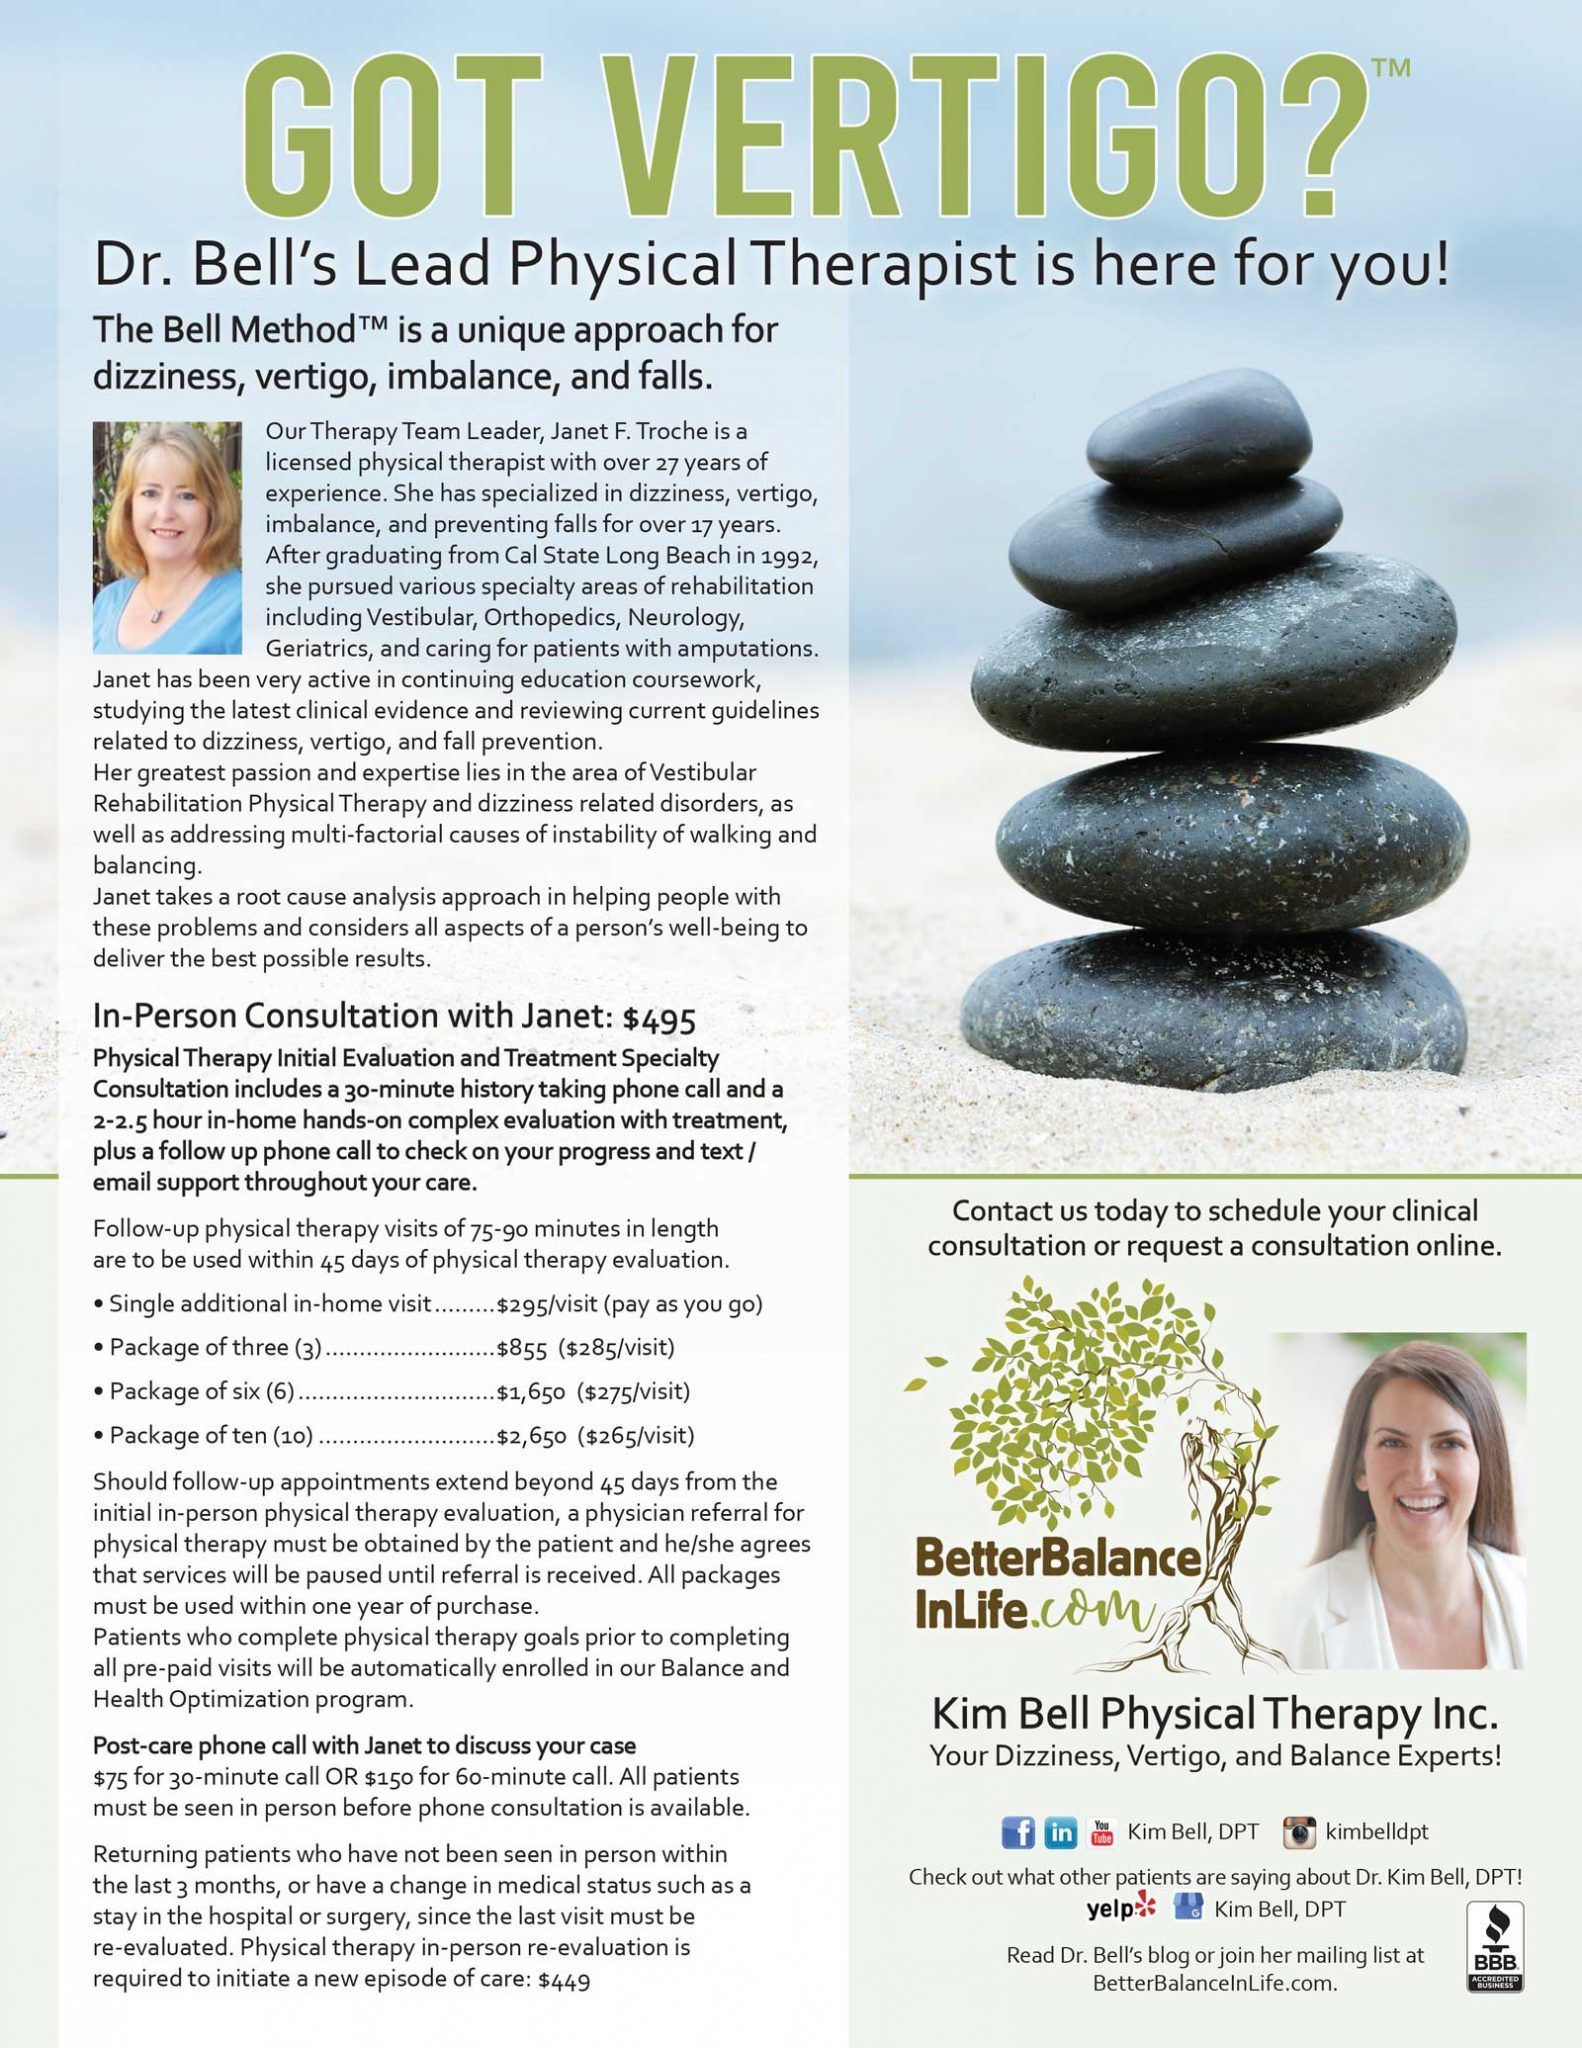 Dr. Bell's Lead Physical Therapist, Janet Troche, patient services